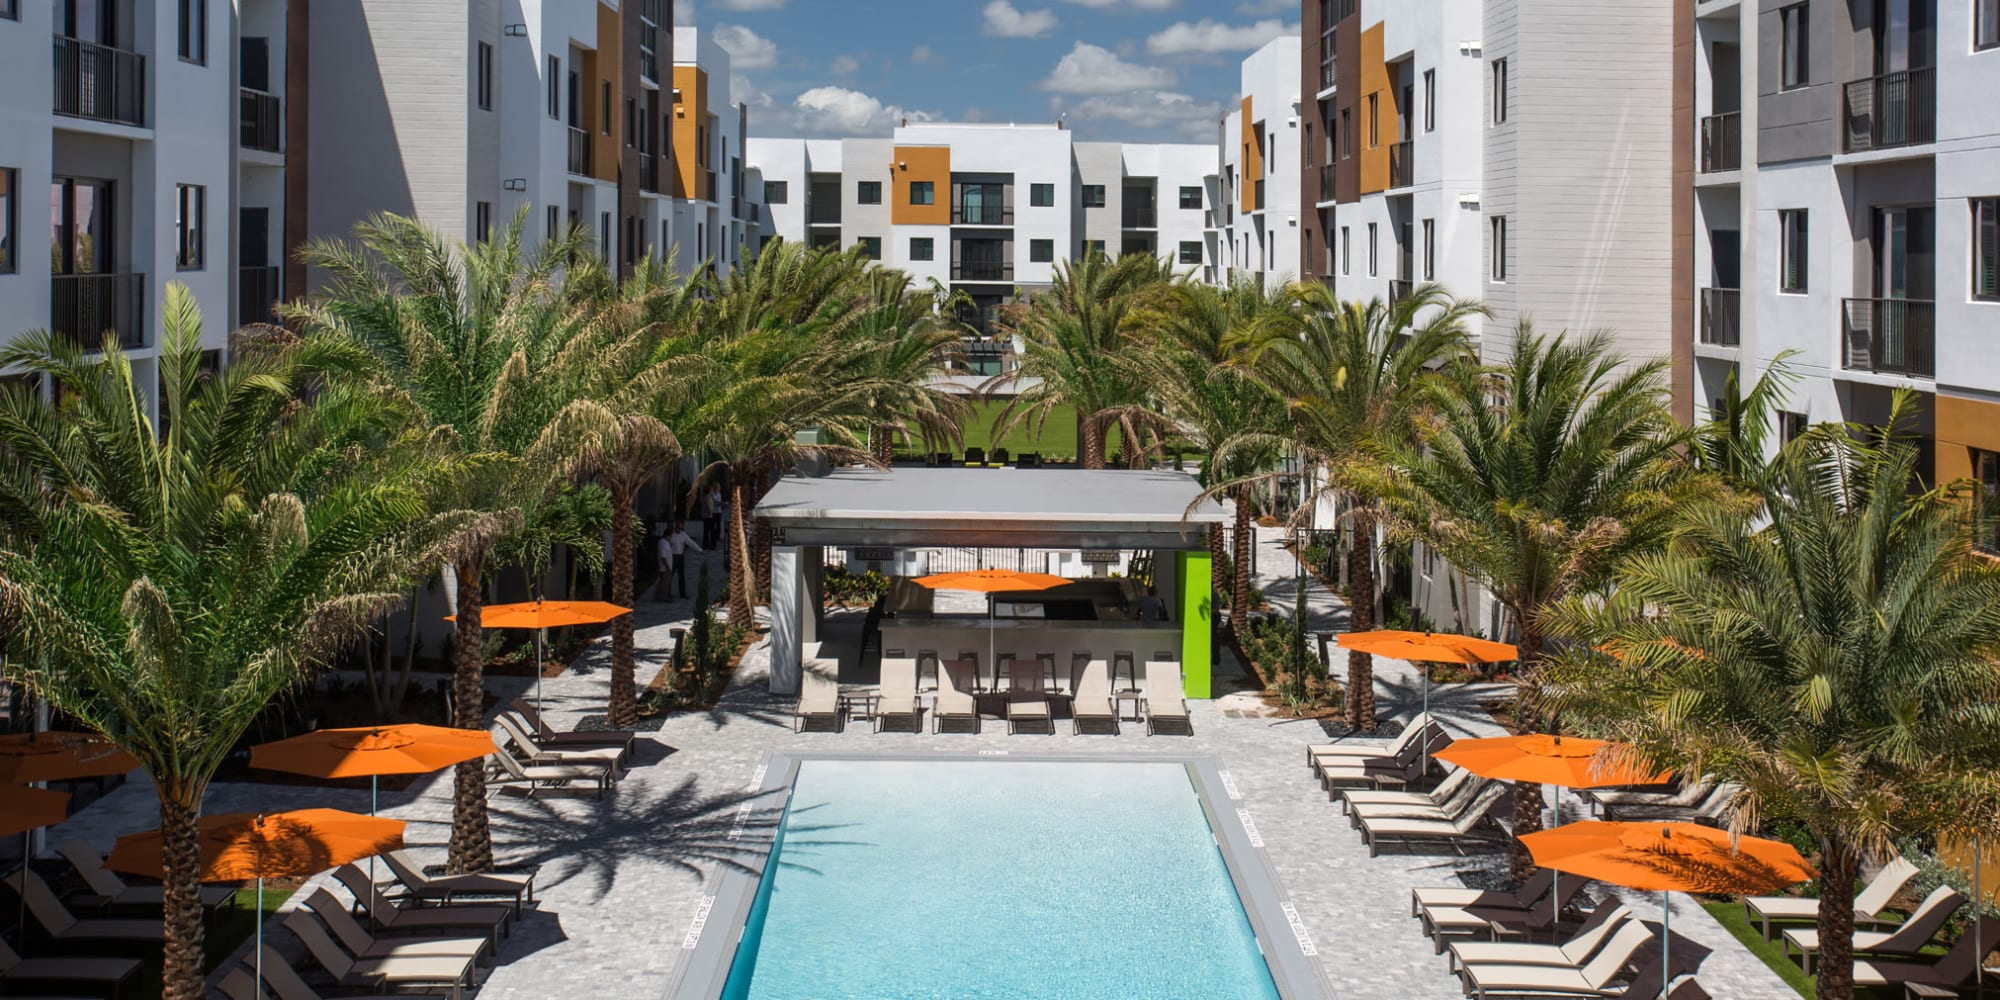 Apartments at University Park in Boca Raton, Florida